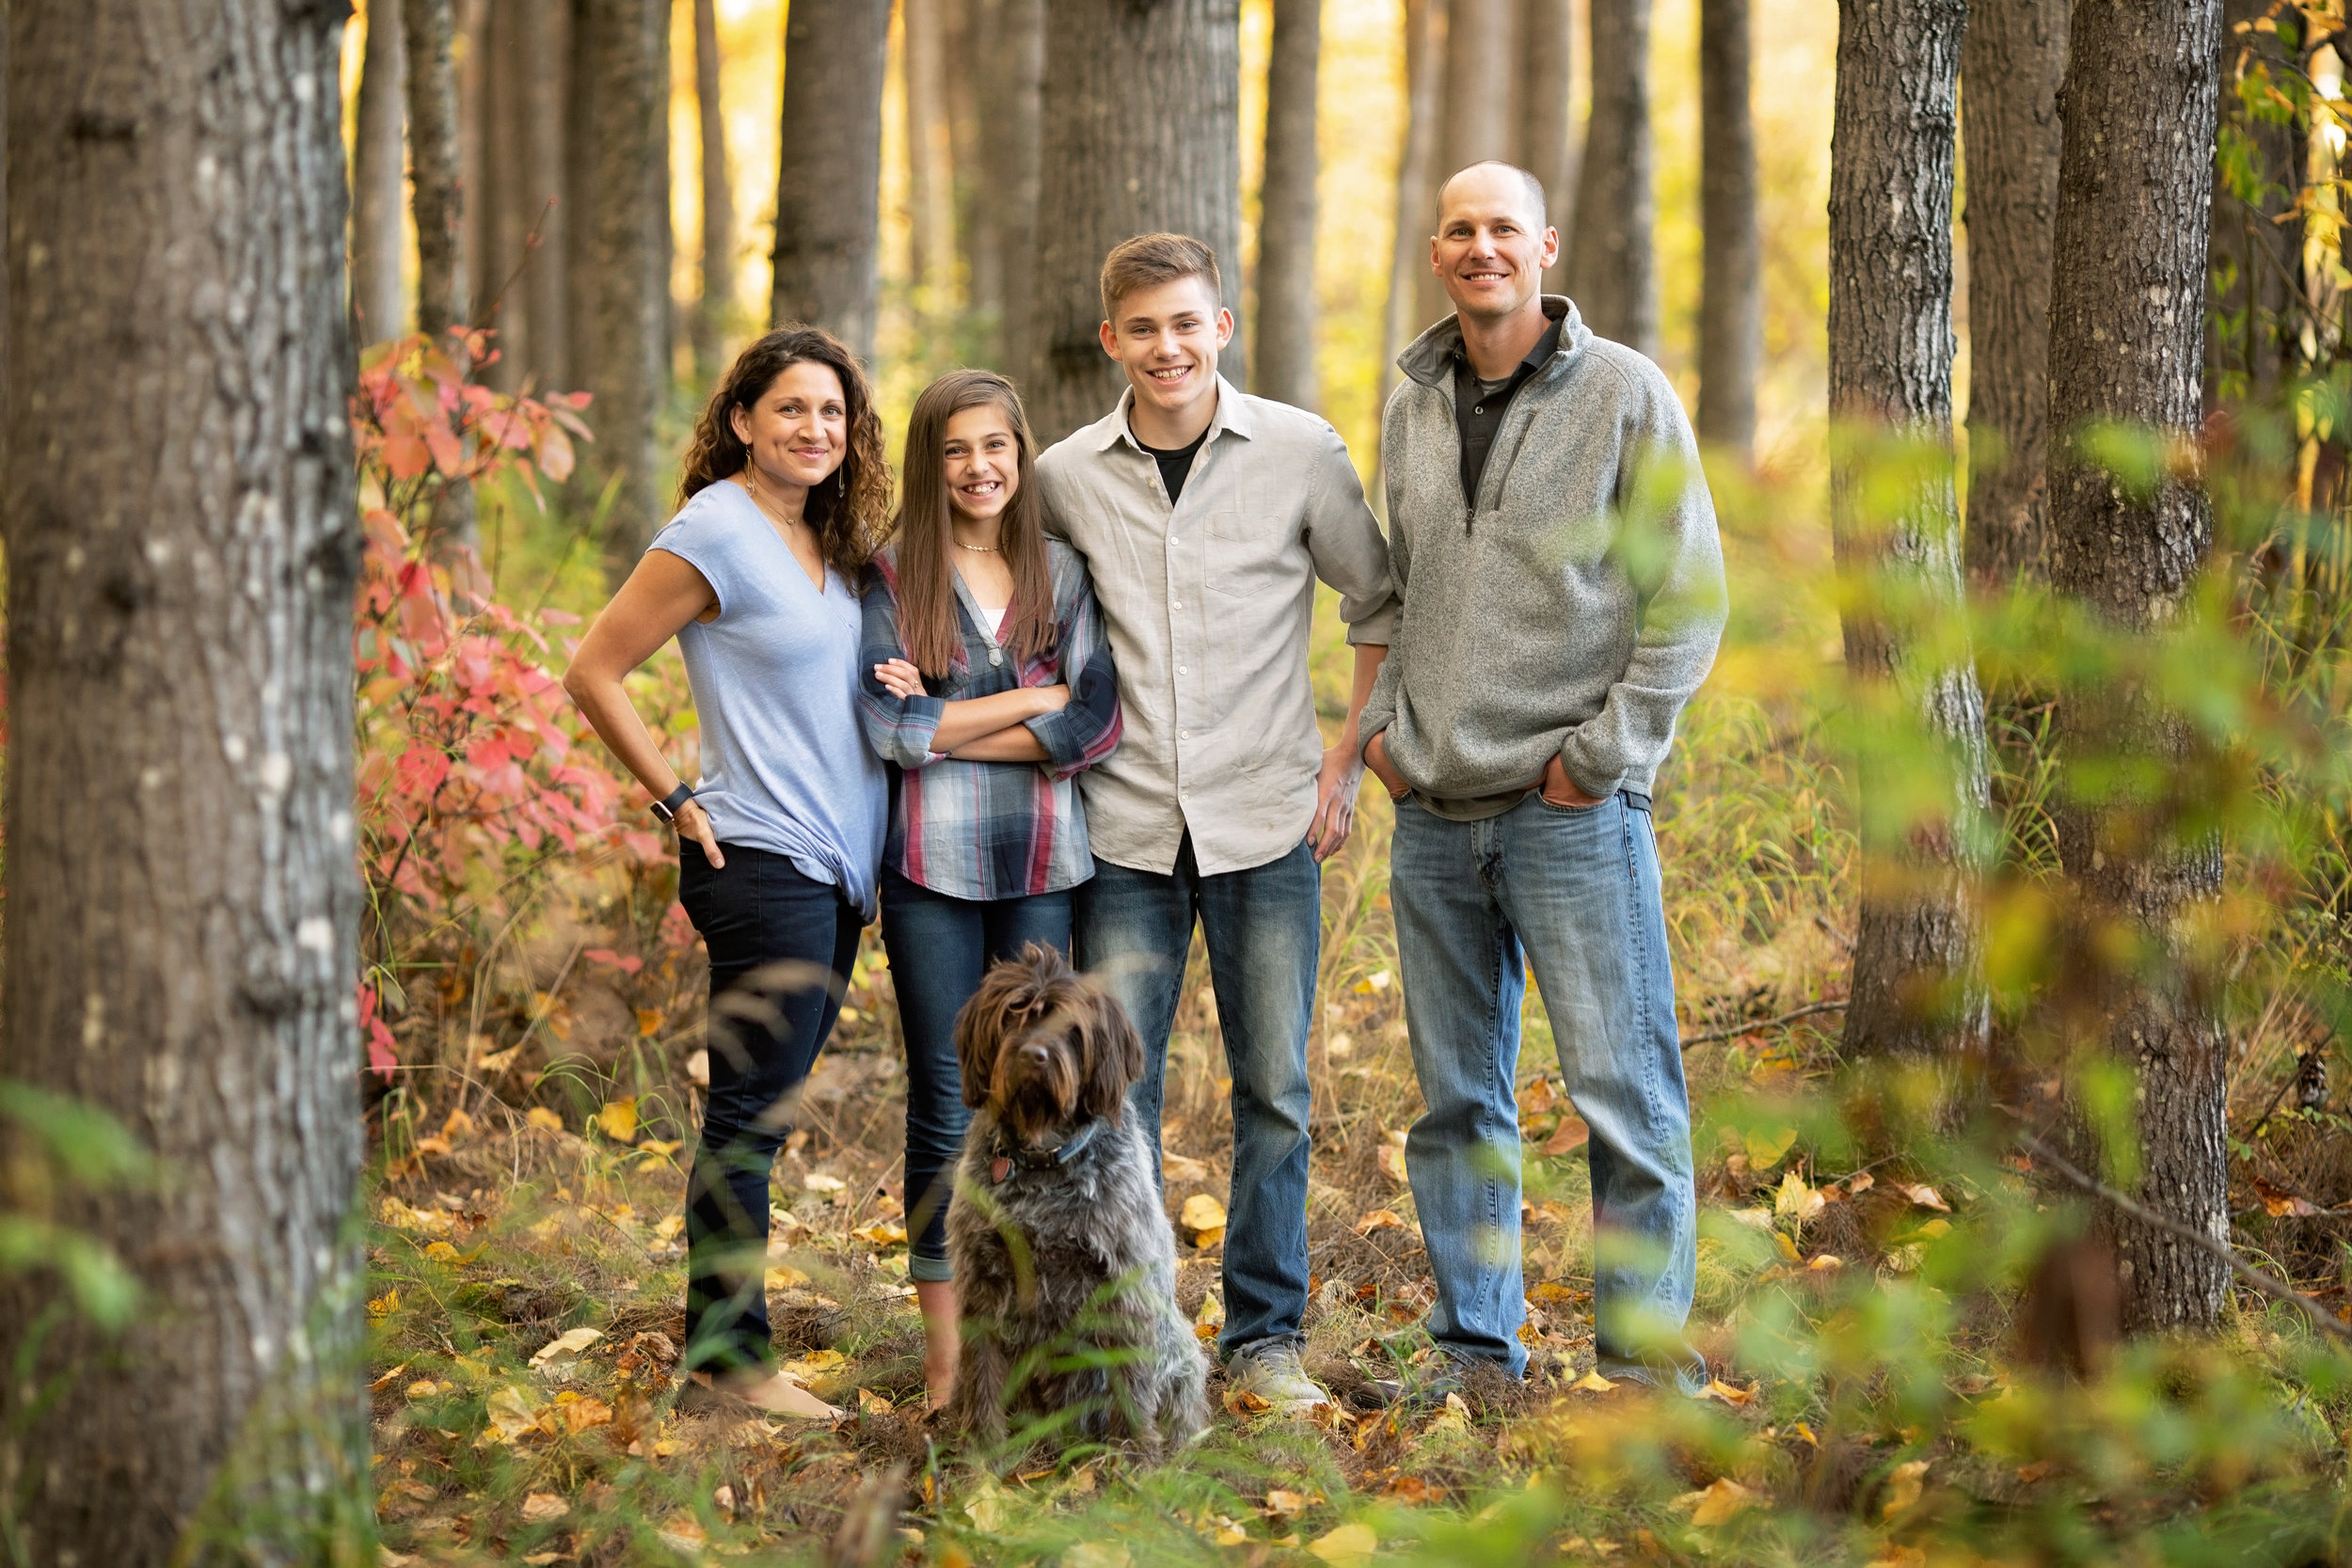 anchorage-family-photographer-7.jpg